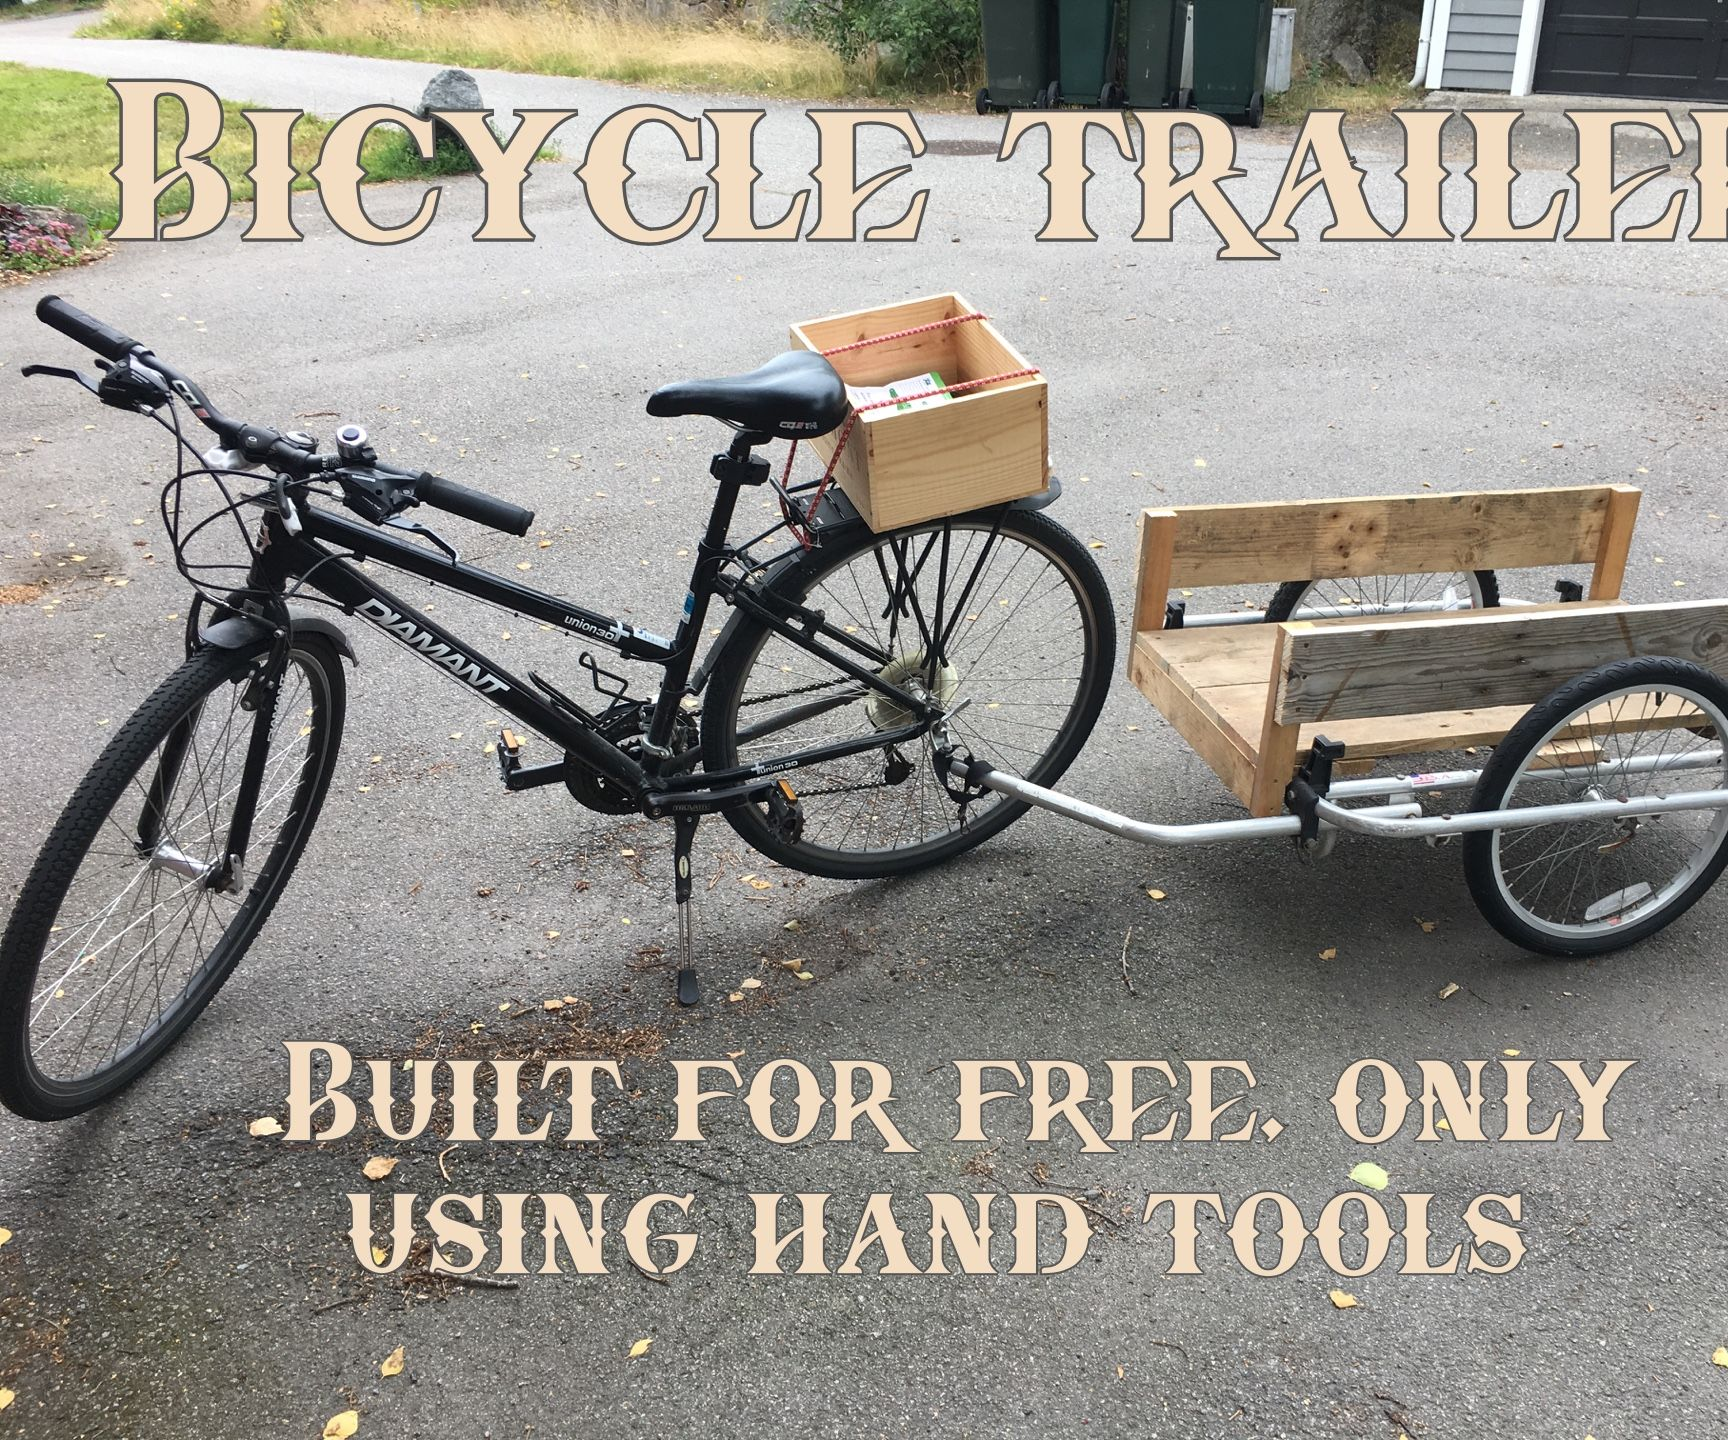 Free Bike Trailer, With Only Hand Tools